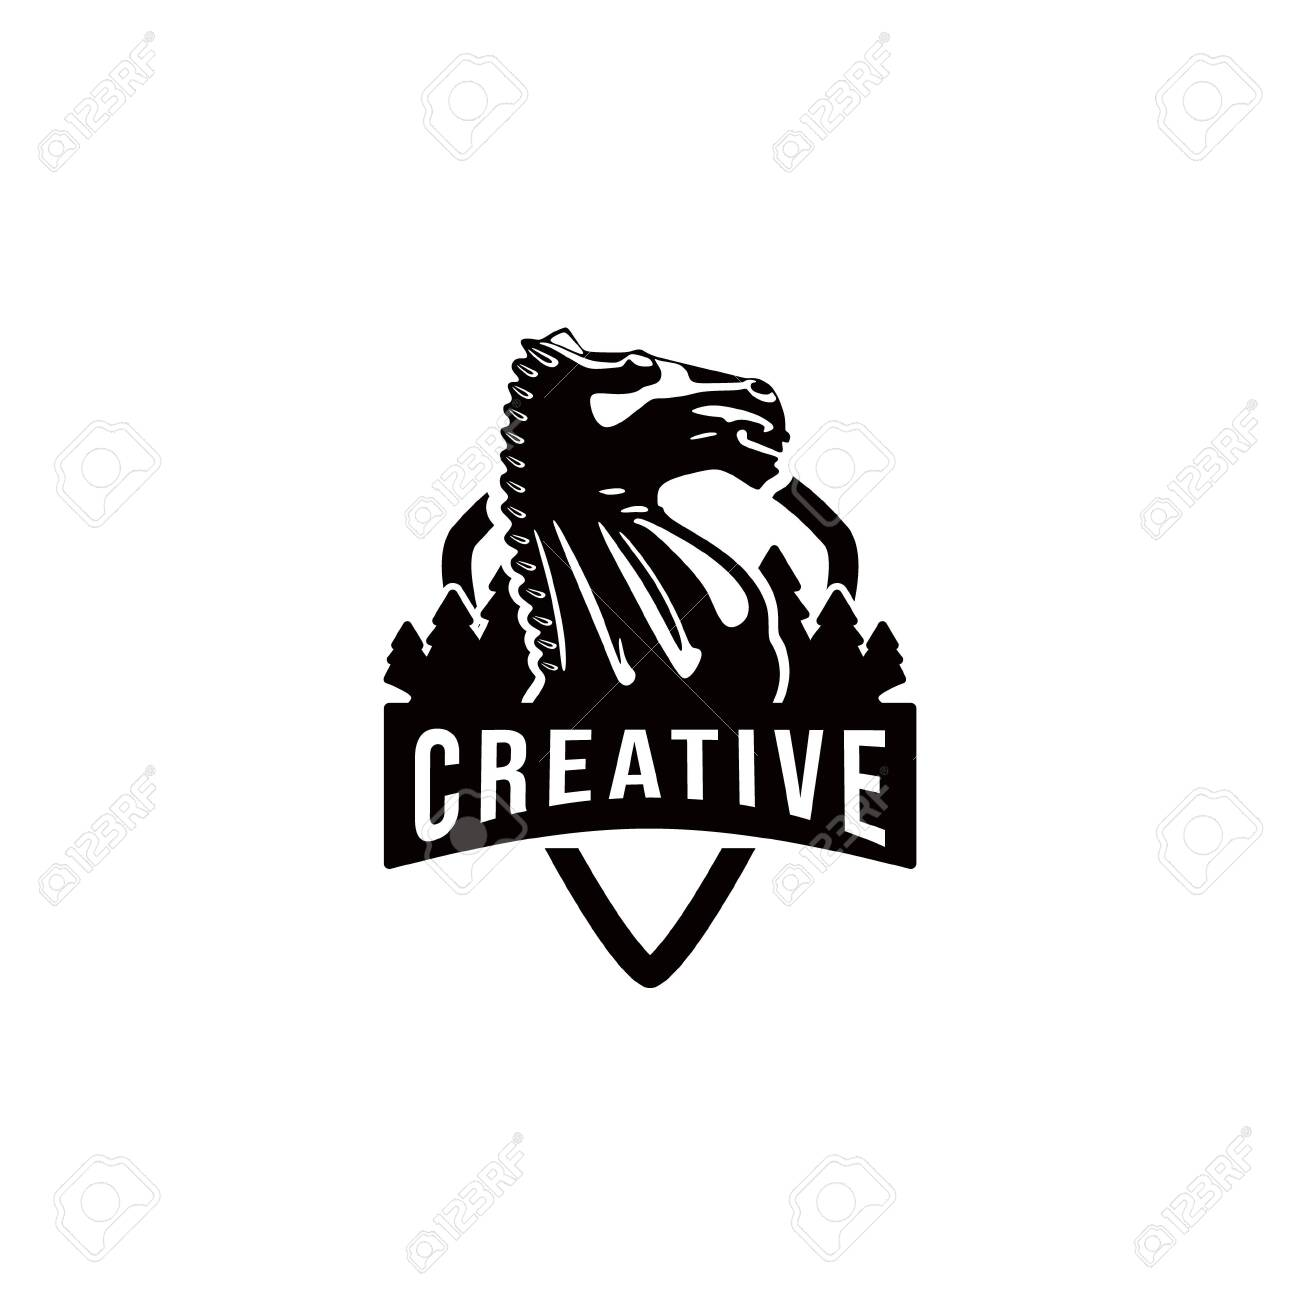 Creative Knight Horse Chess With Pine Logo Ideas Inspiration Royalty Free Cliparts Vectors And Stock Illustration Image 140691511